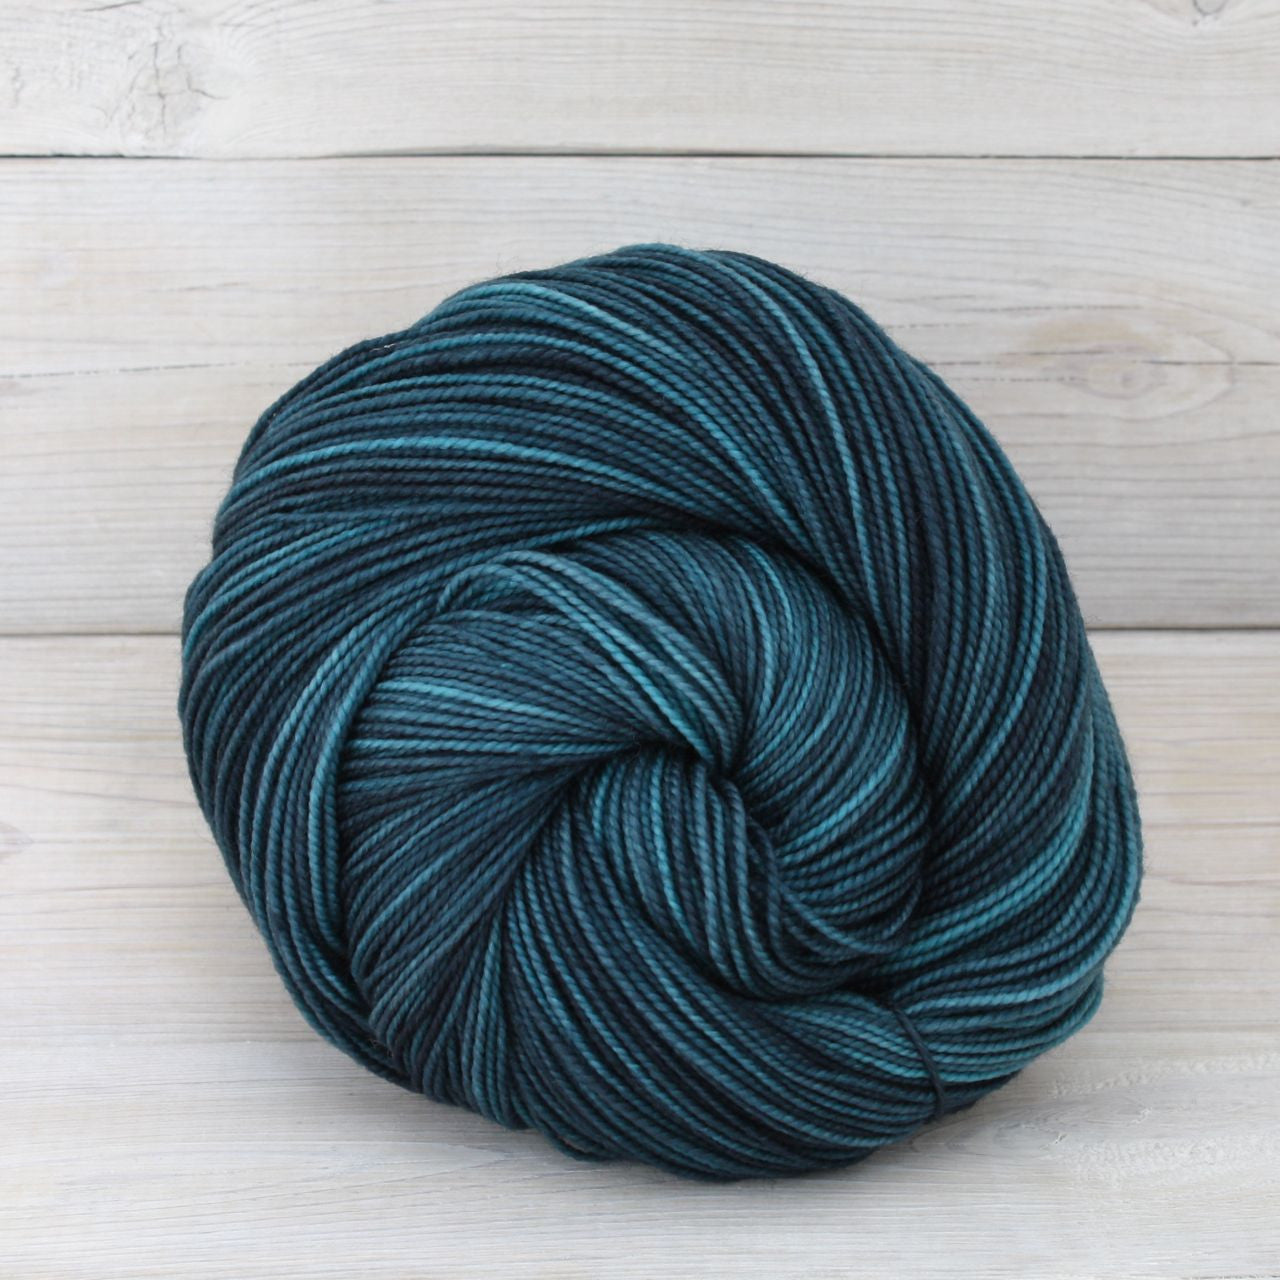 Colorway: Techno | Dyed to Order Yarn